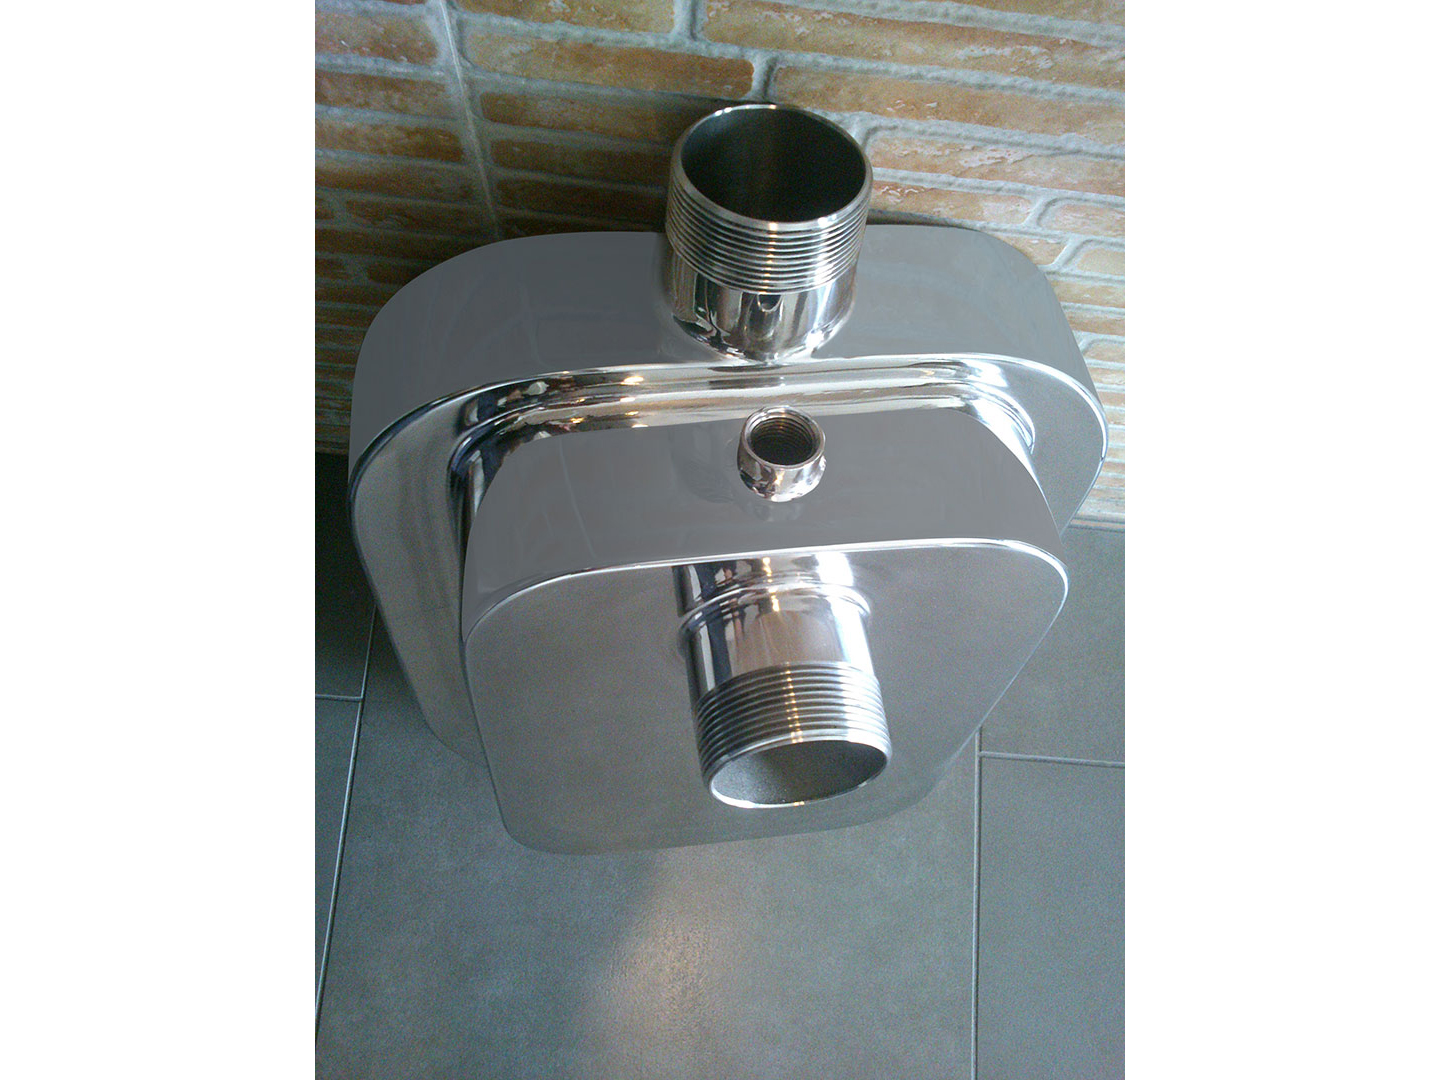 Metalaym, accessoris, inox